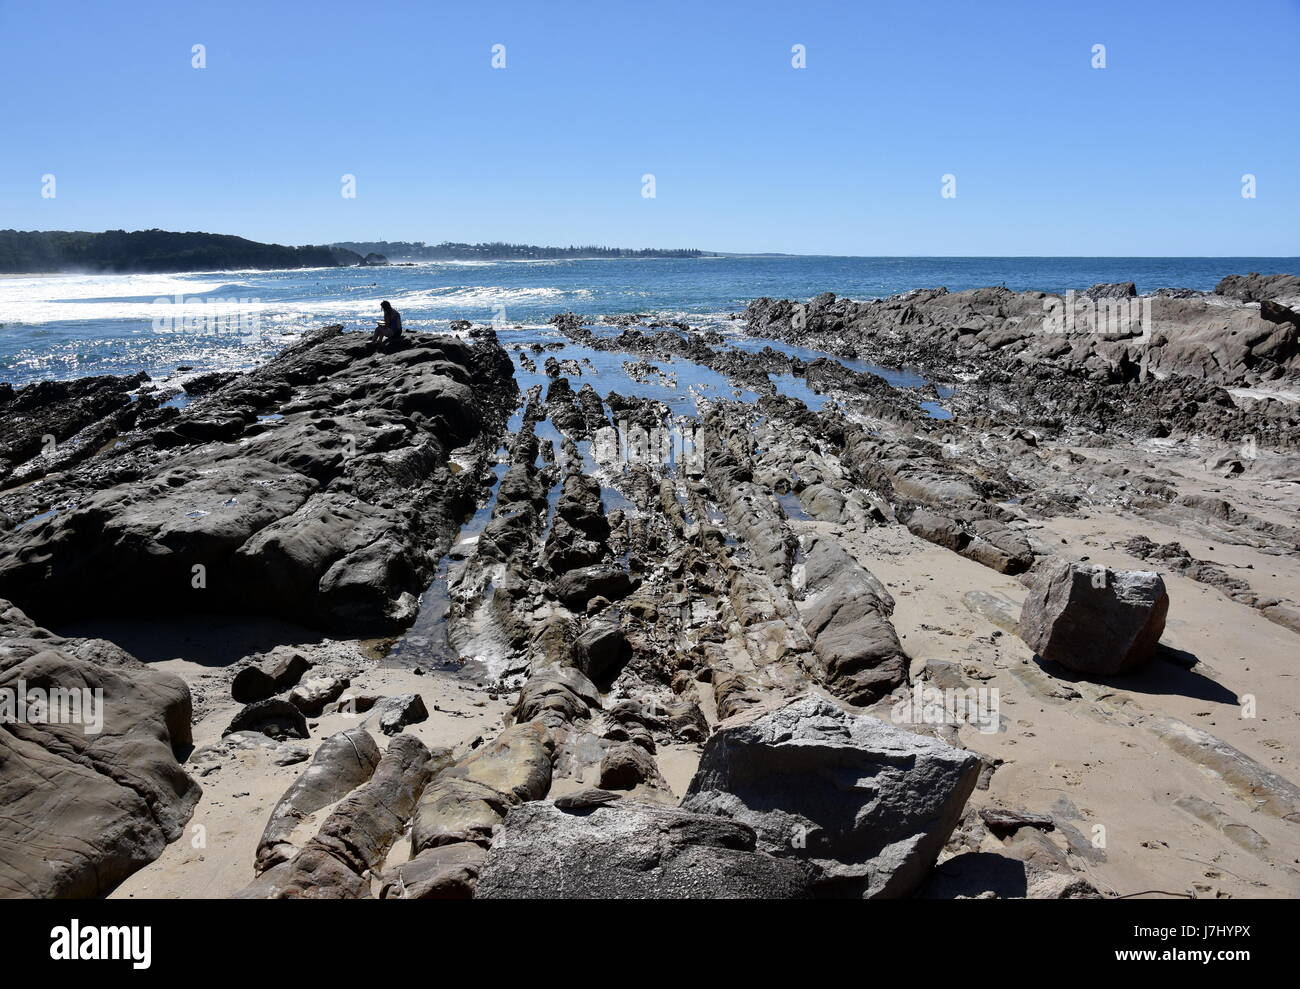 Rocks at Potato Point beach. Potato Point is a village in the Eurobodalla Shire lying on the south coast of NSW, - Stock Image